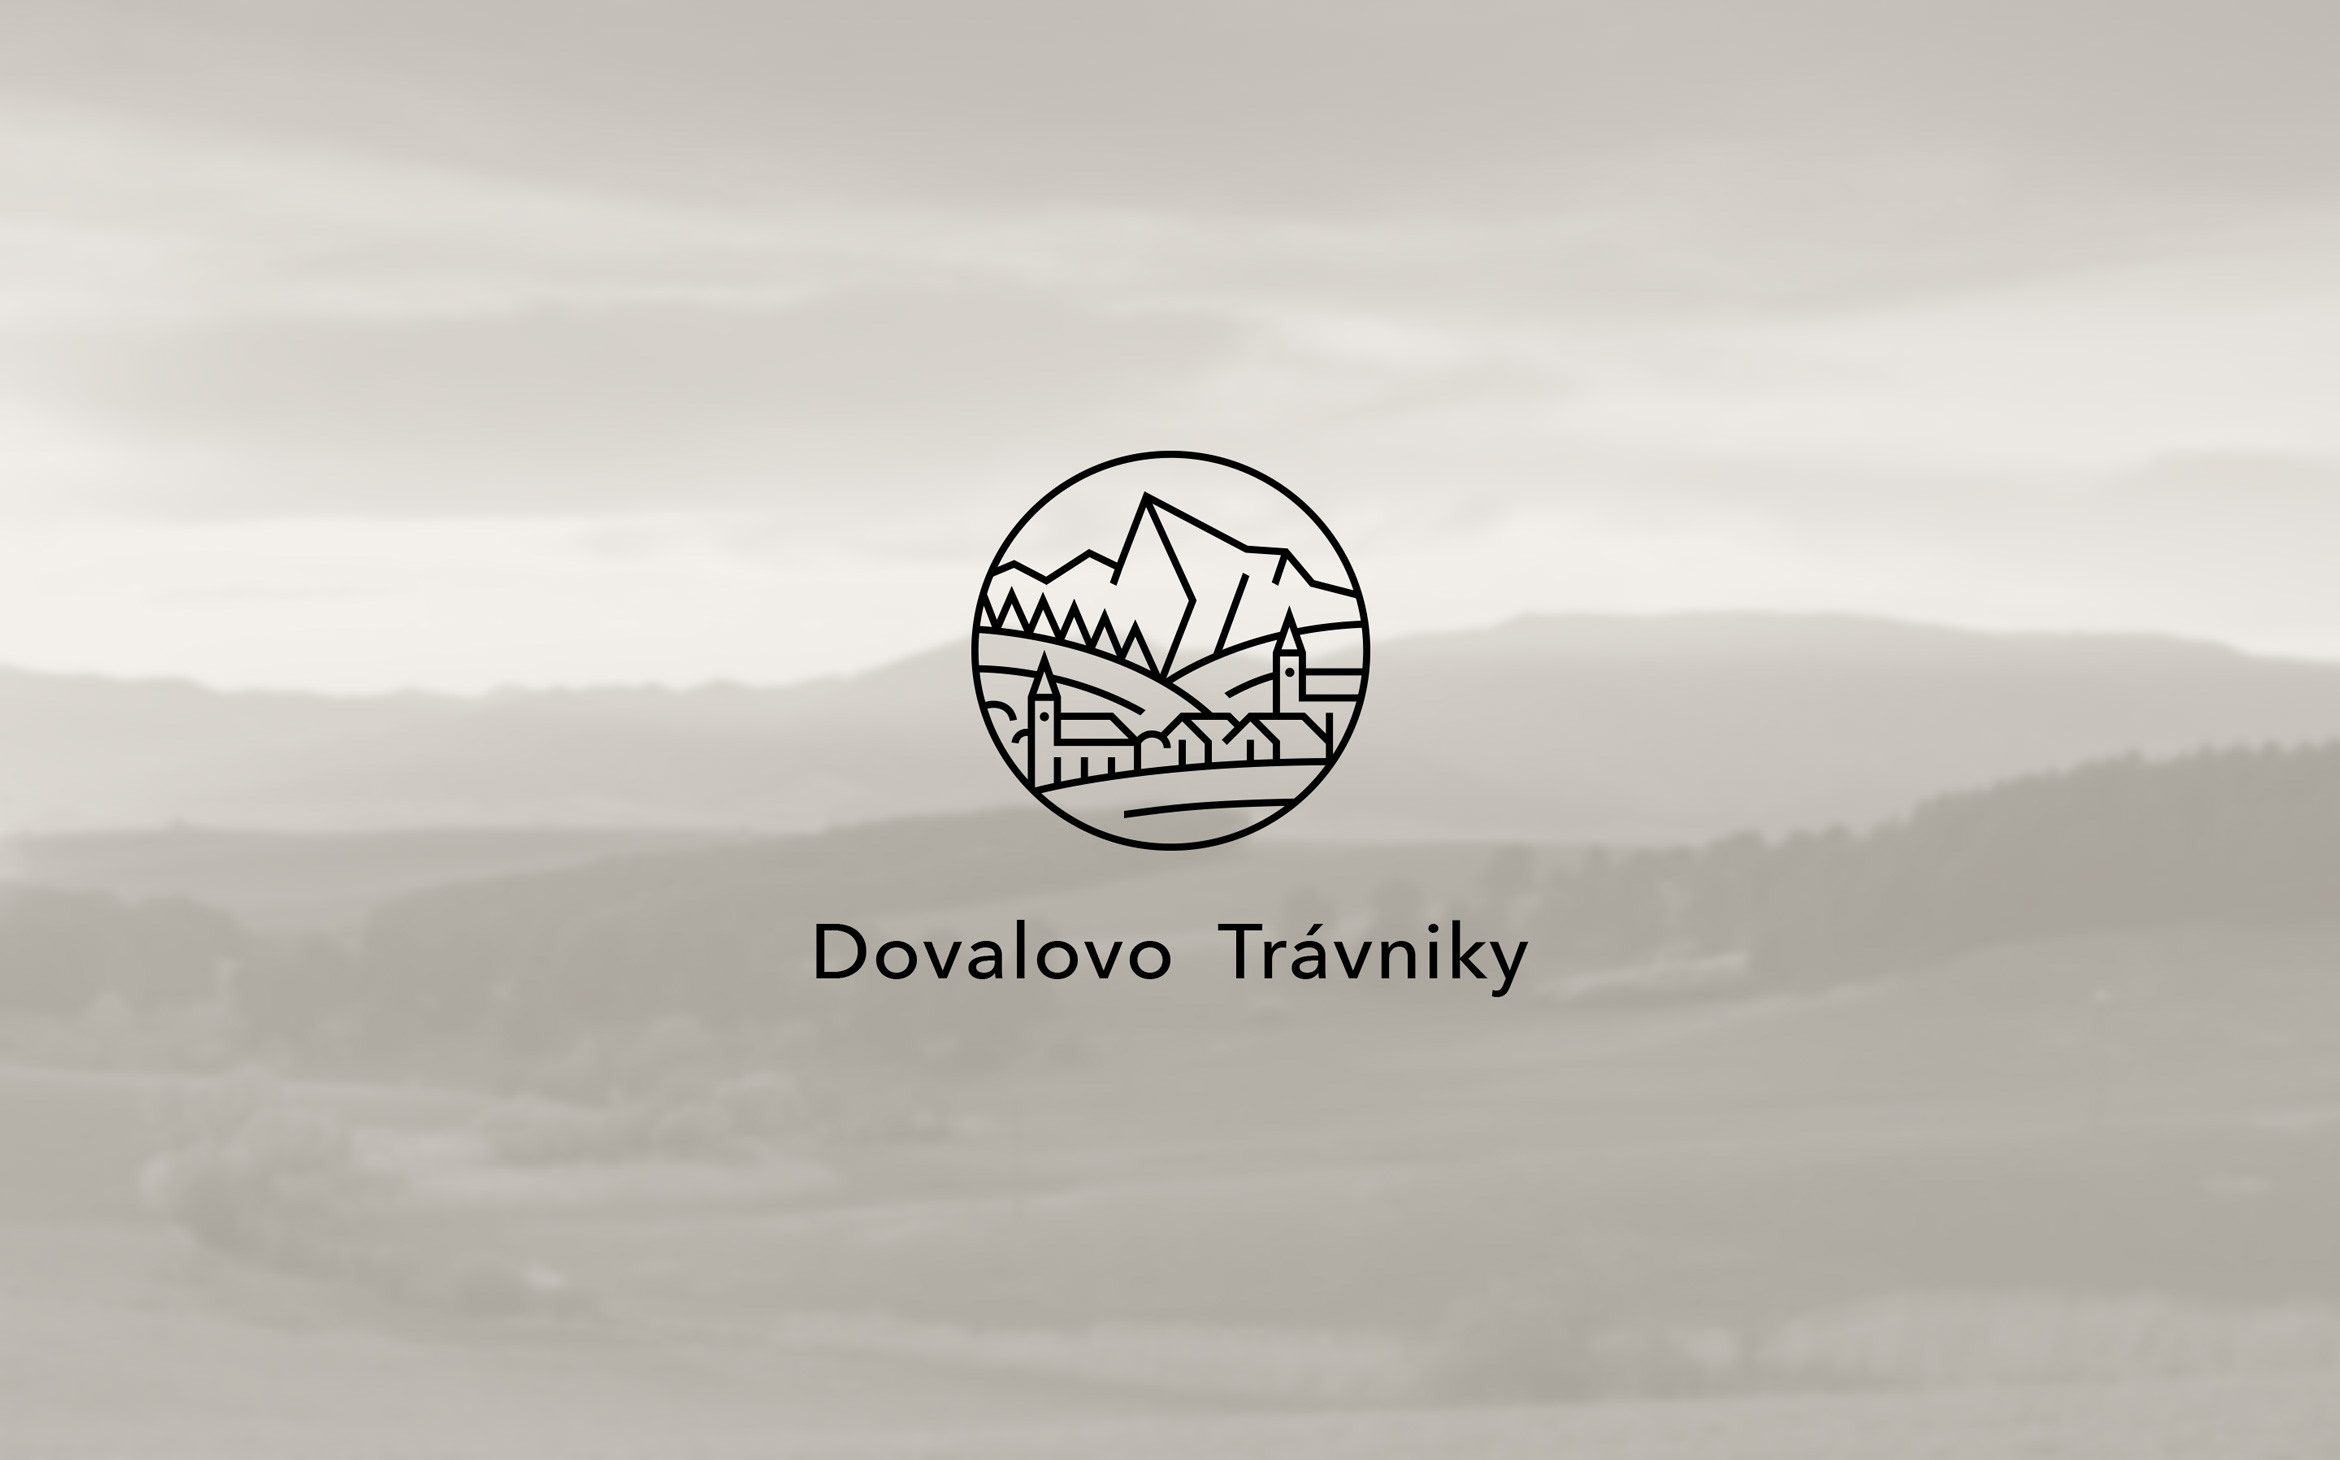 Dovalovo-Logo-Black-White-By-Jan-Baca